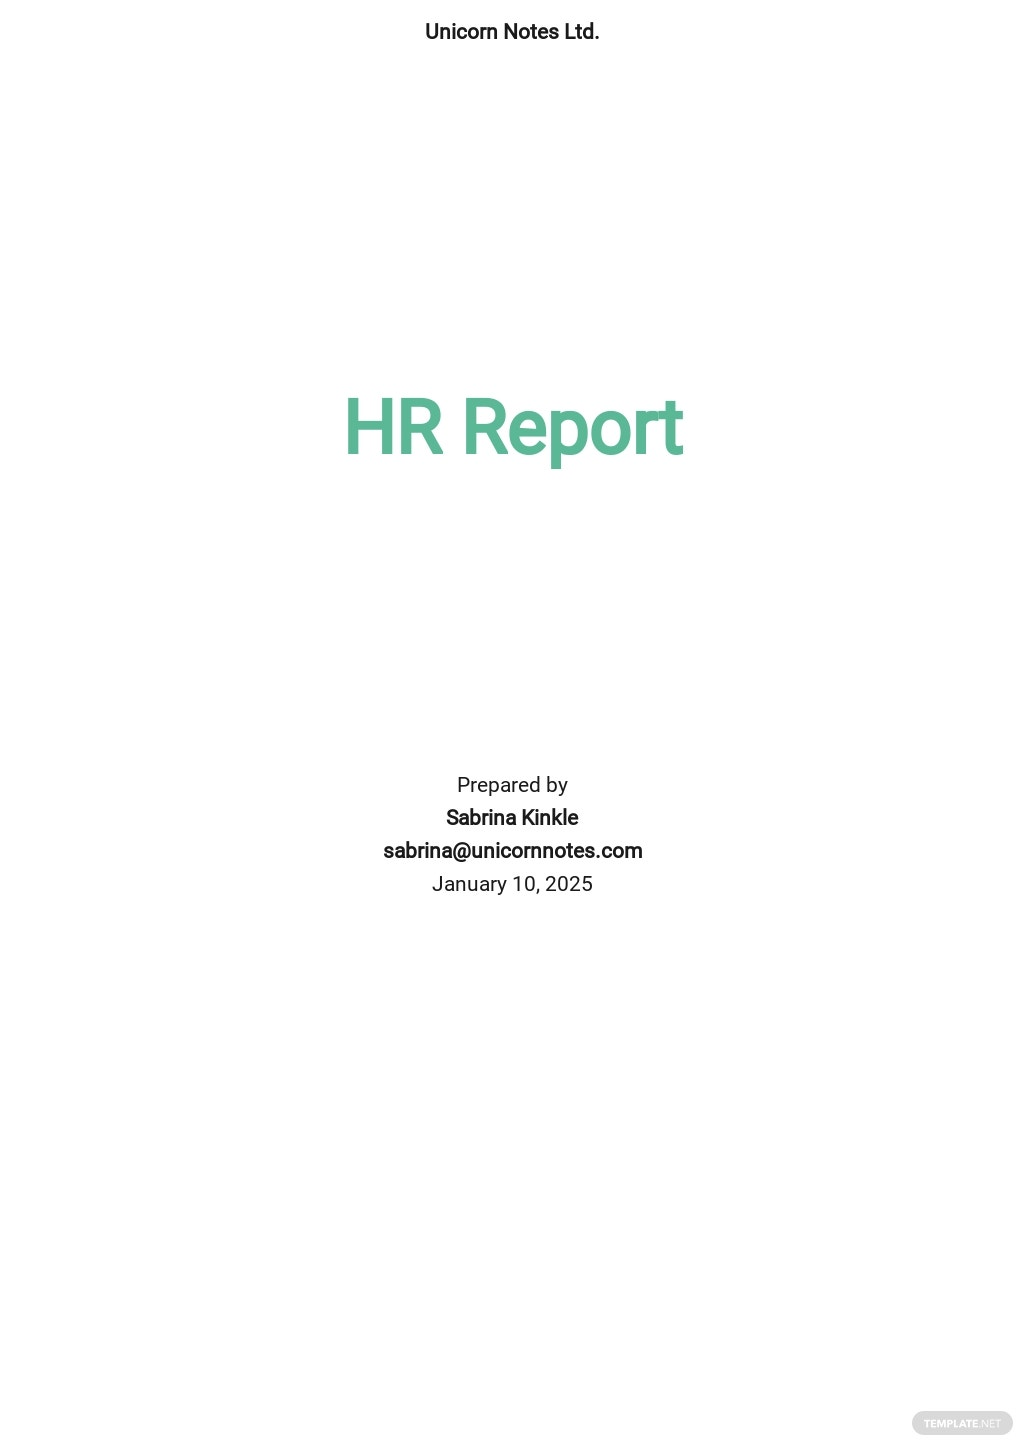 HR Report Template